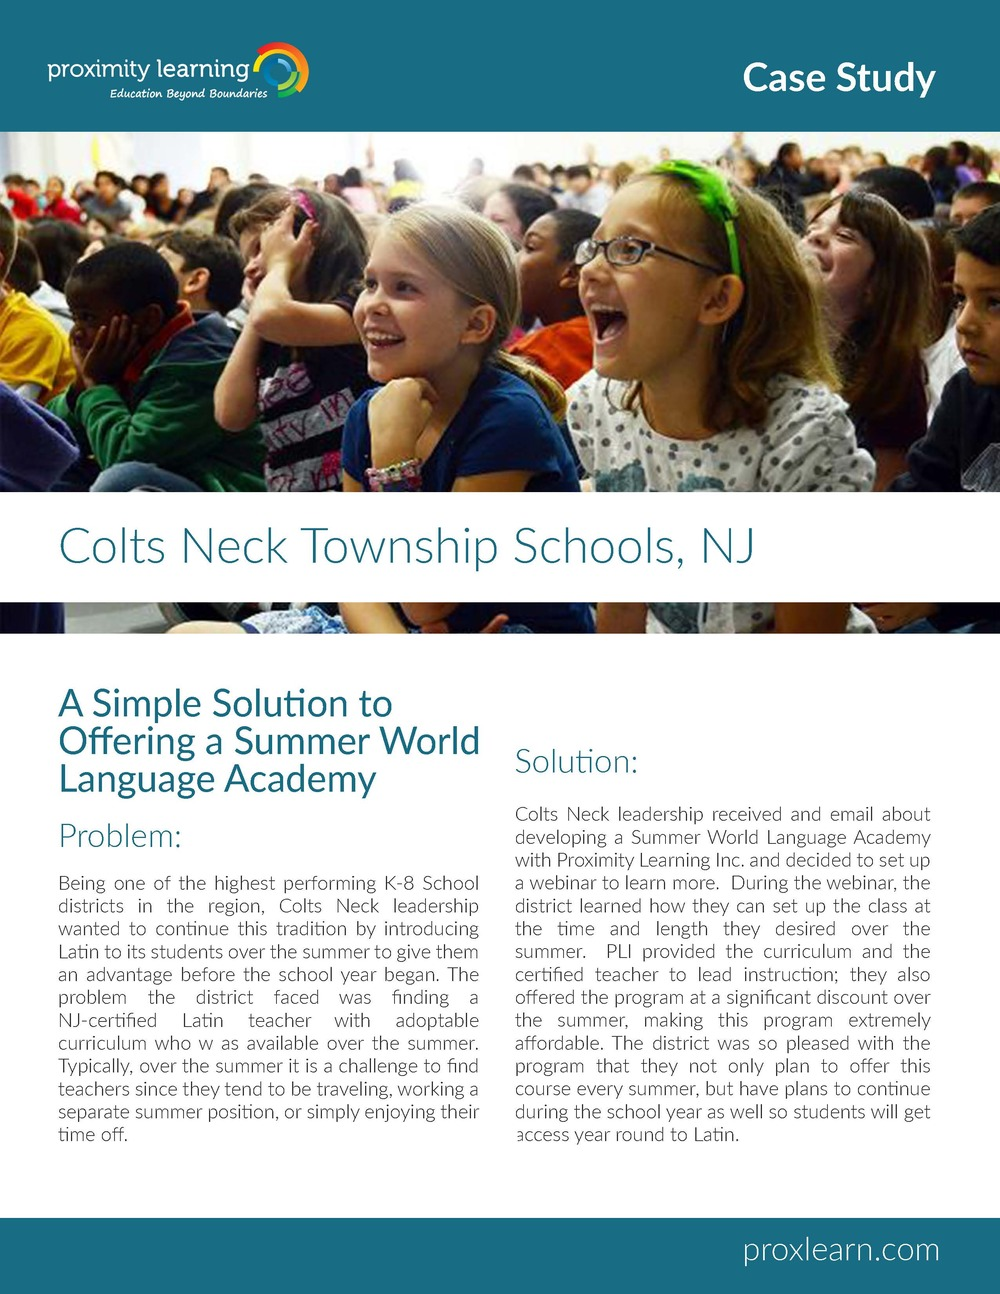 Colts Neck Township